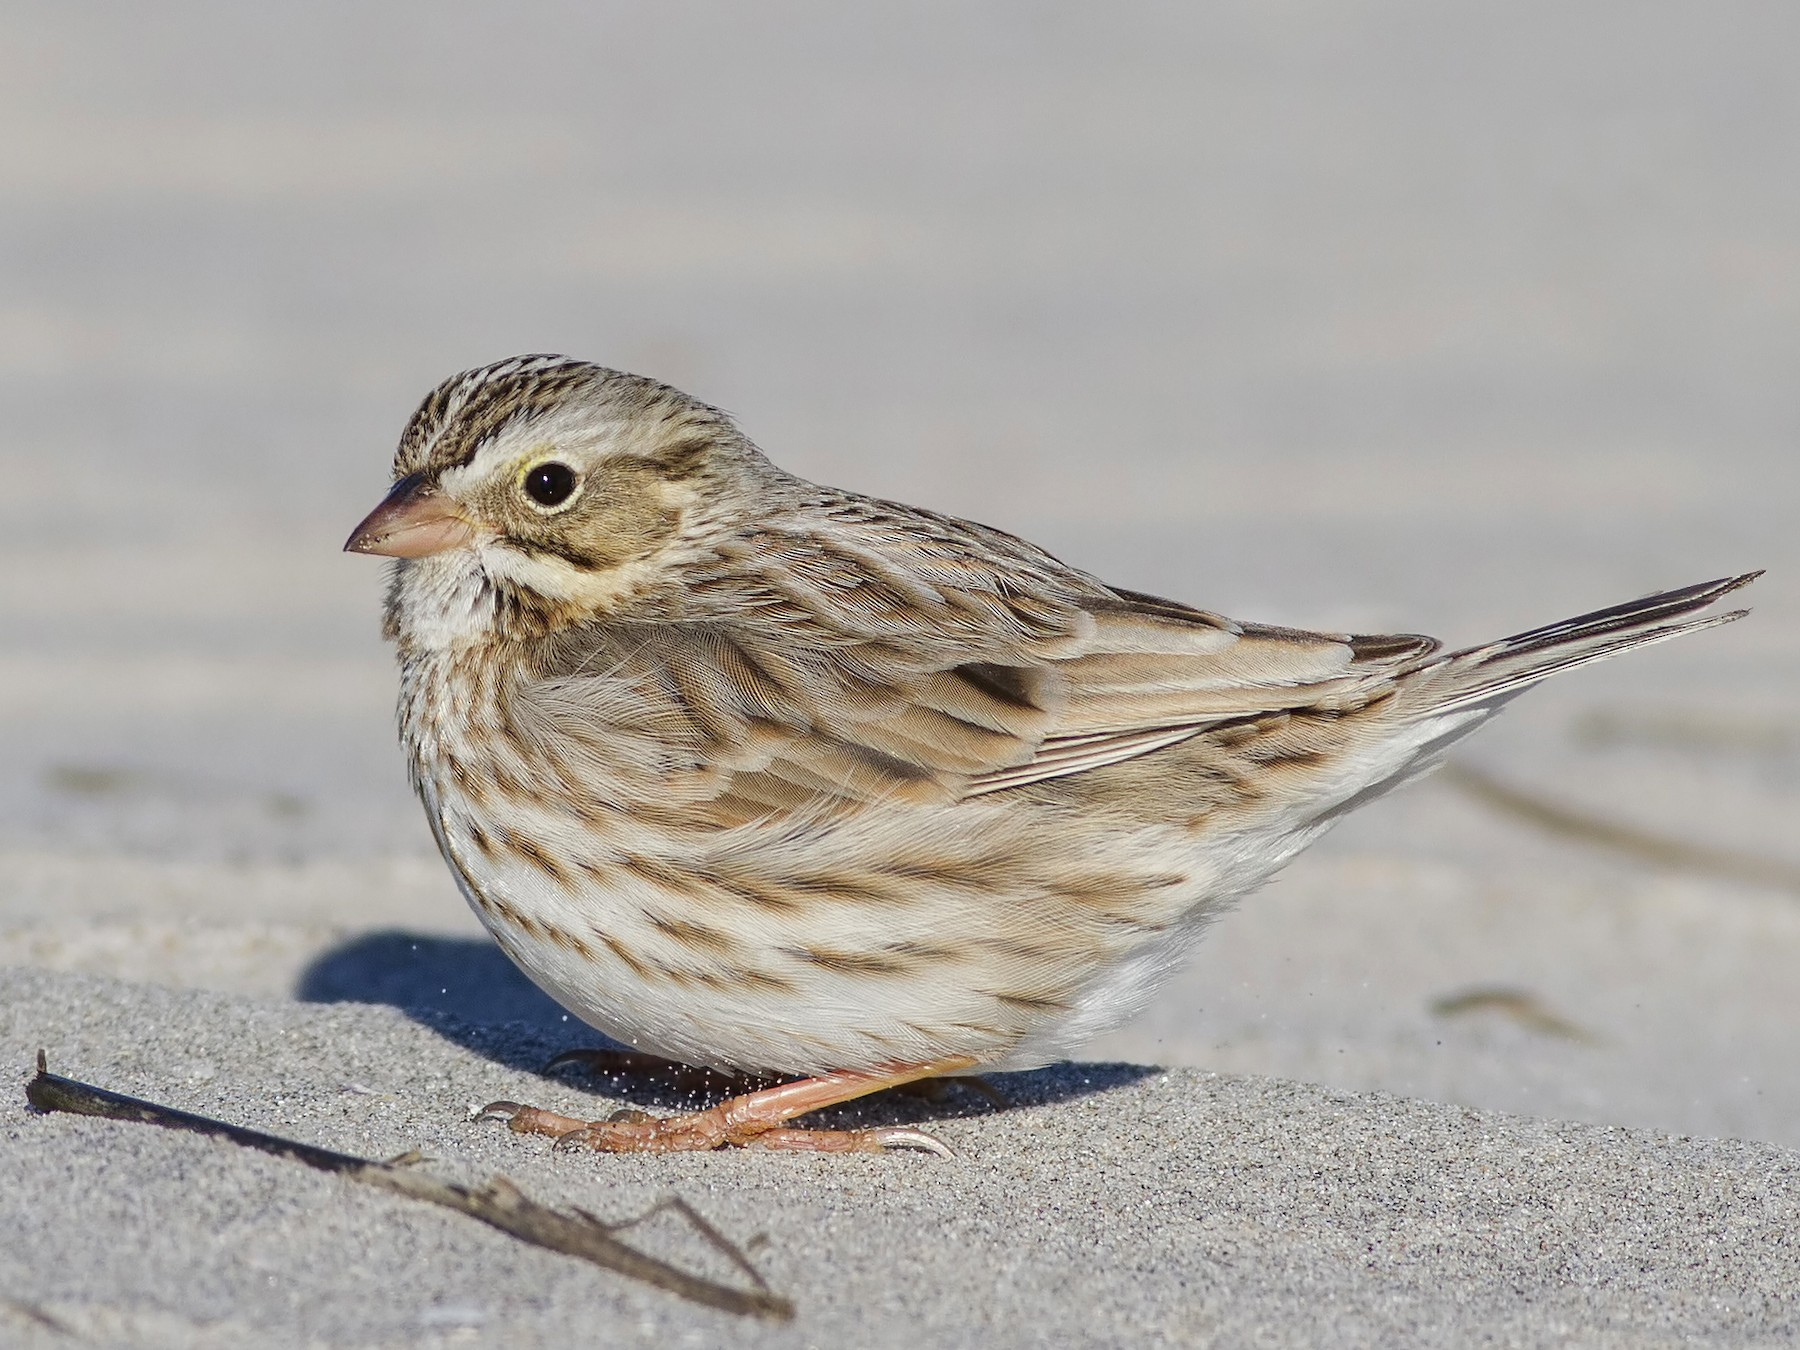 Savannah Sparrow - Samuel Paul Galick